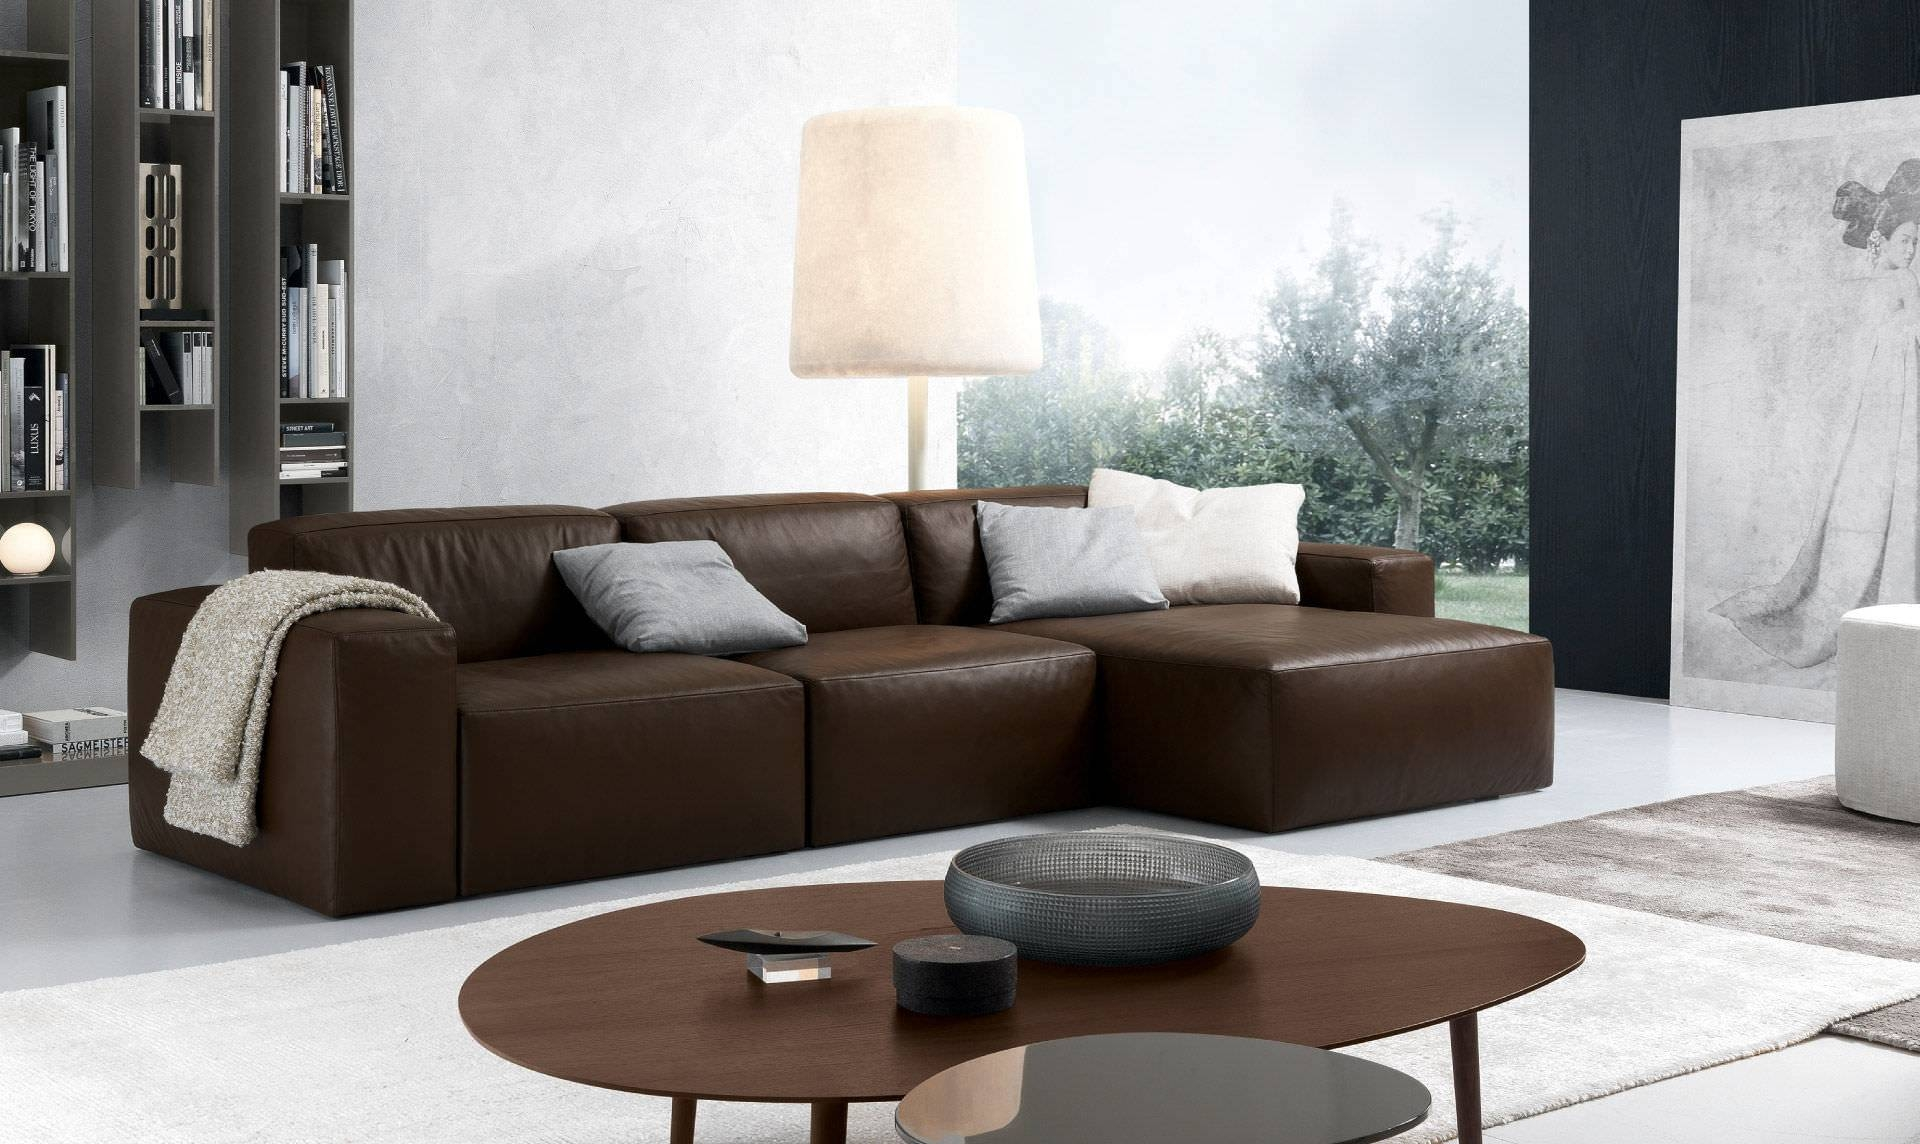 Corner Sofa / Contemporary / Leather / 3 Seater – Daniel Regarding Contemporary Brown Leather Sofas (View 9 of 15)